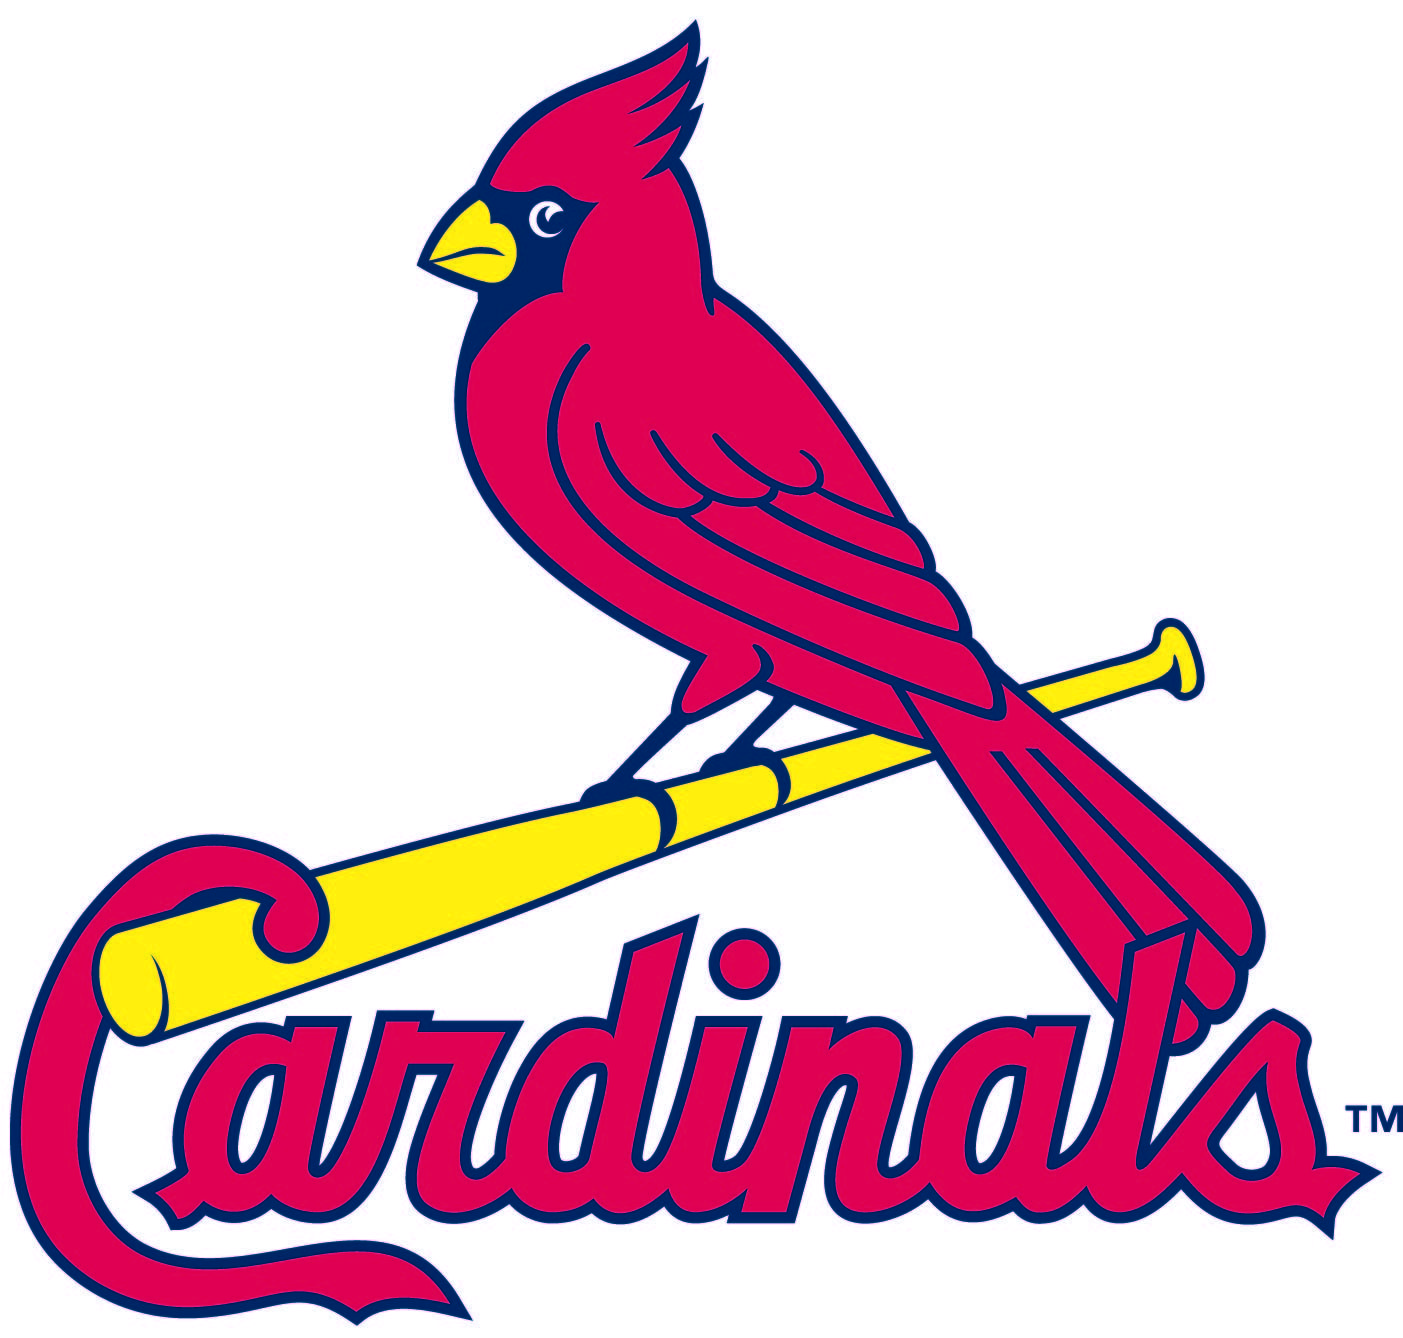 St louis cardinals logo canvas painting ideas pinterest st